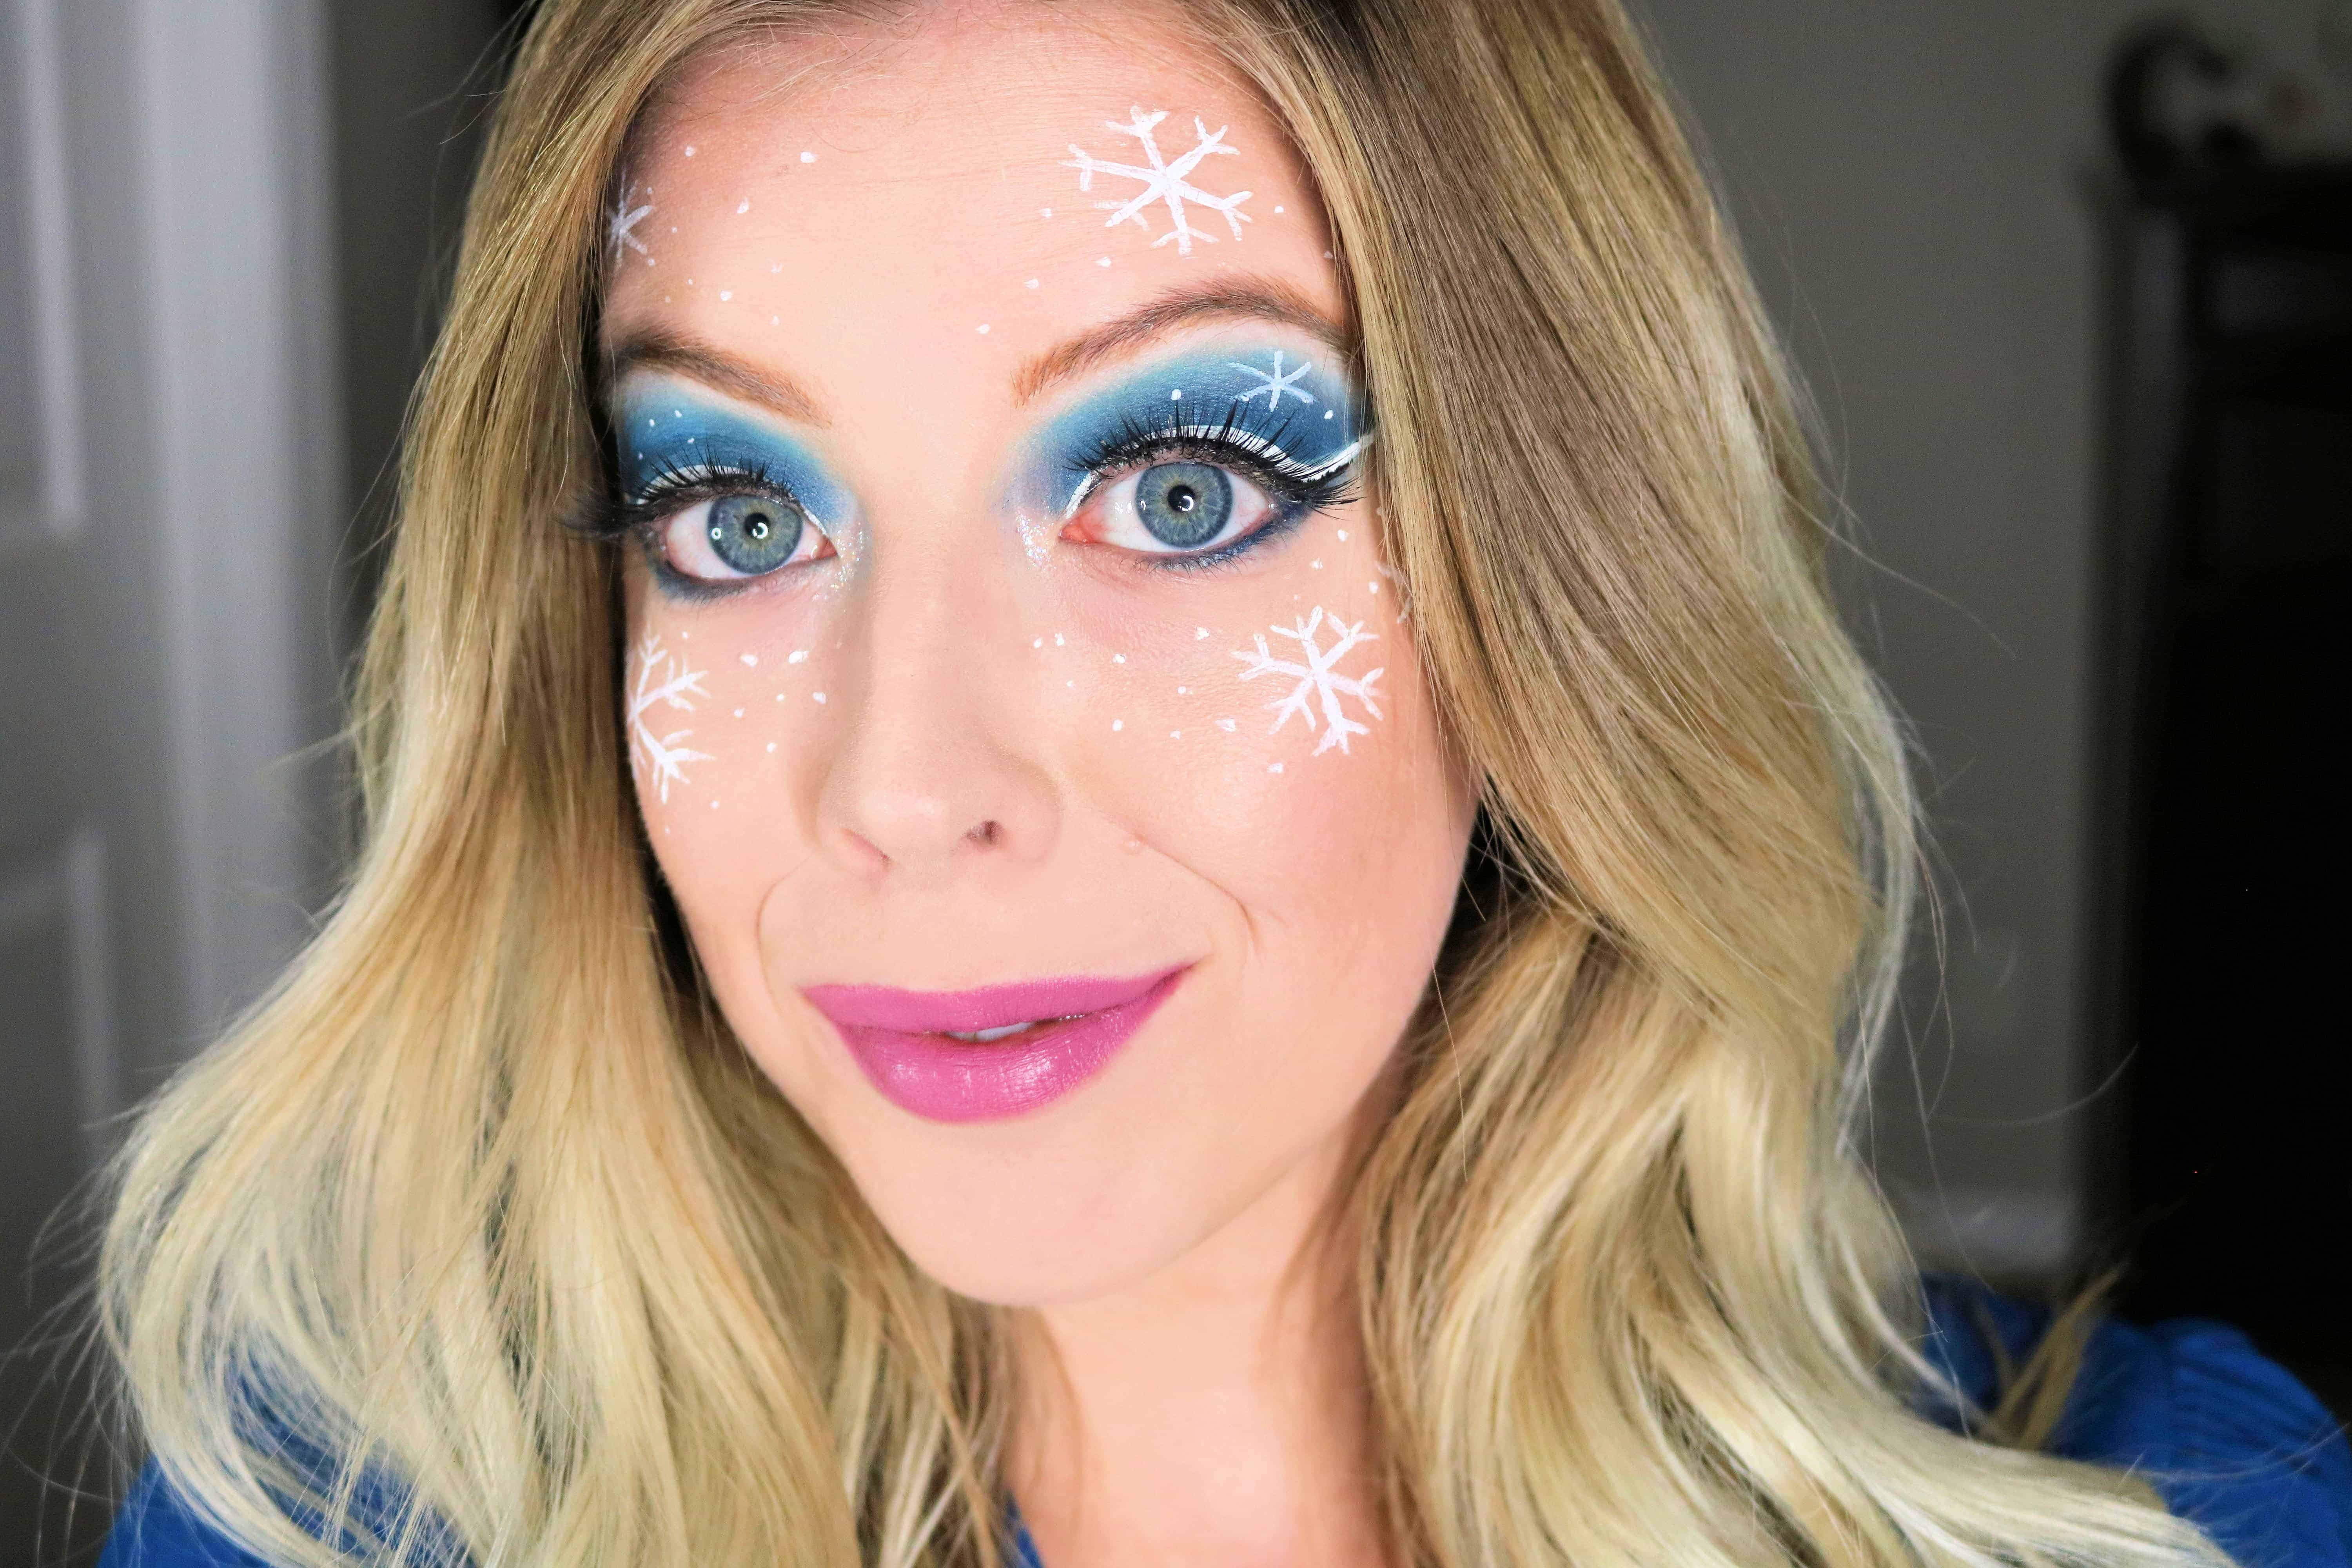 Want to look like a snow queen or ice princess? Then check out this fun + gorgeous ice princess winter snowflakes makeup look that is perfect for holiday parties! #snowflakes #iceprincess #snowqueen #wintermakeup